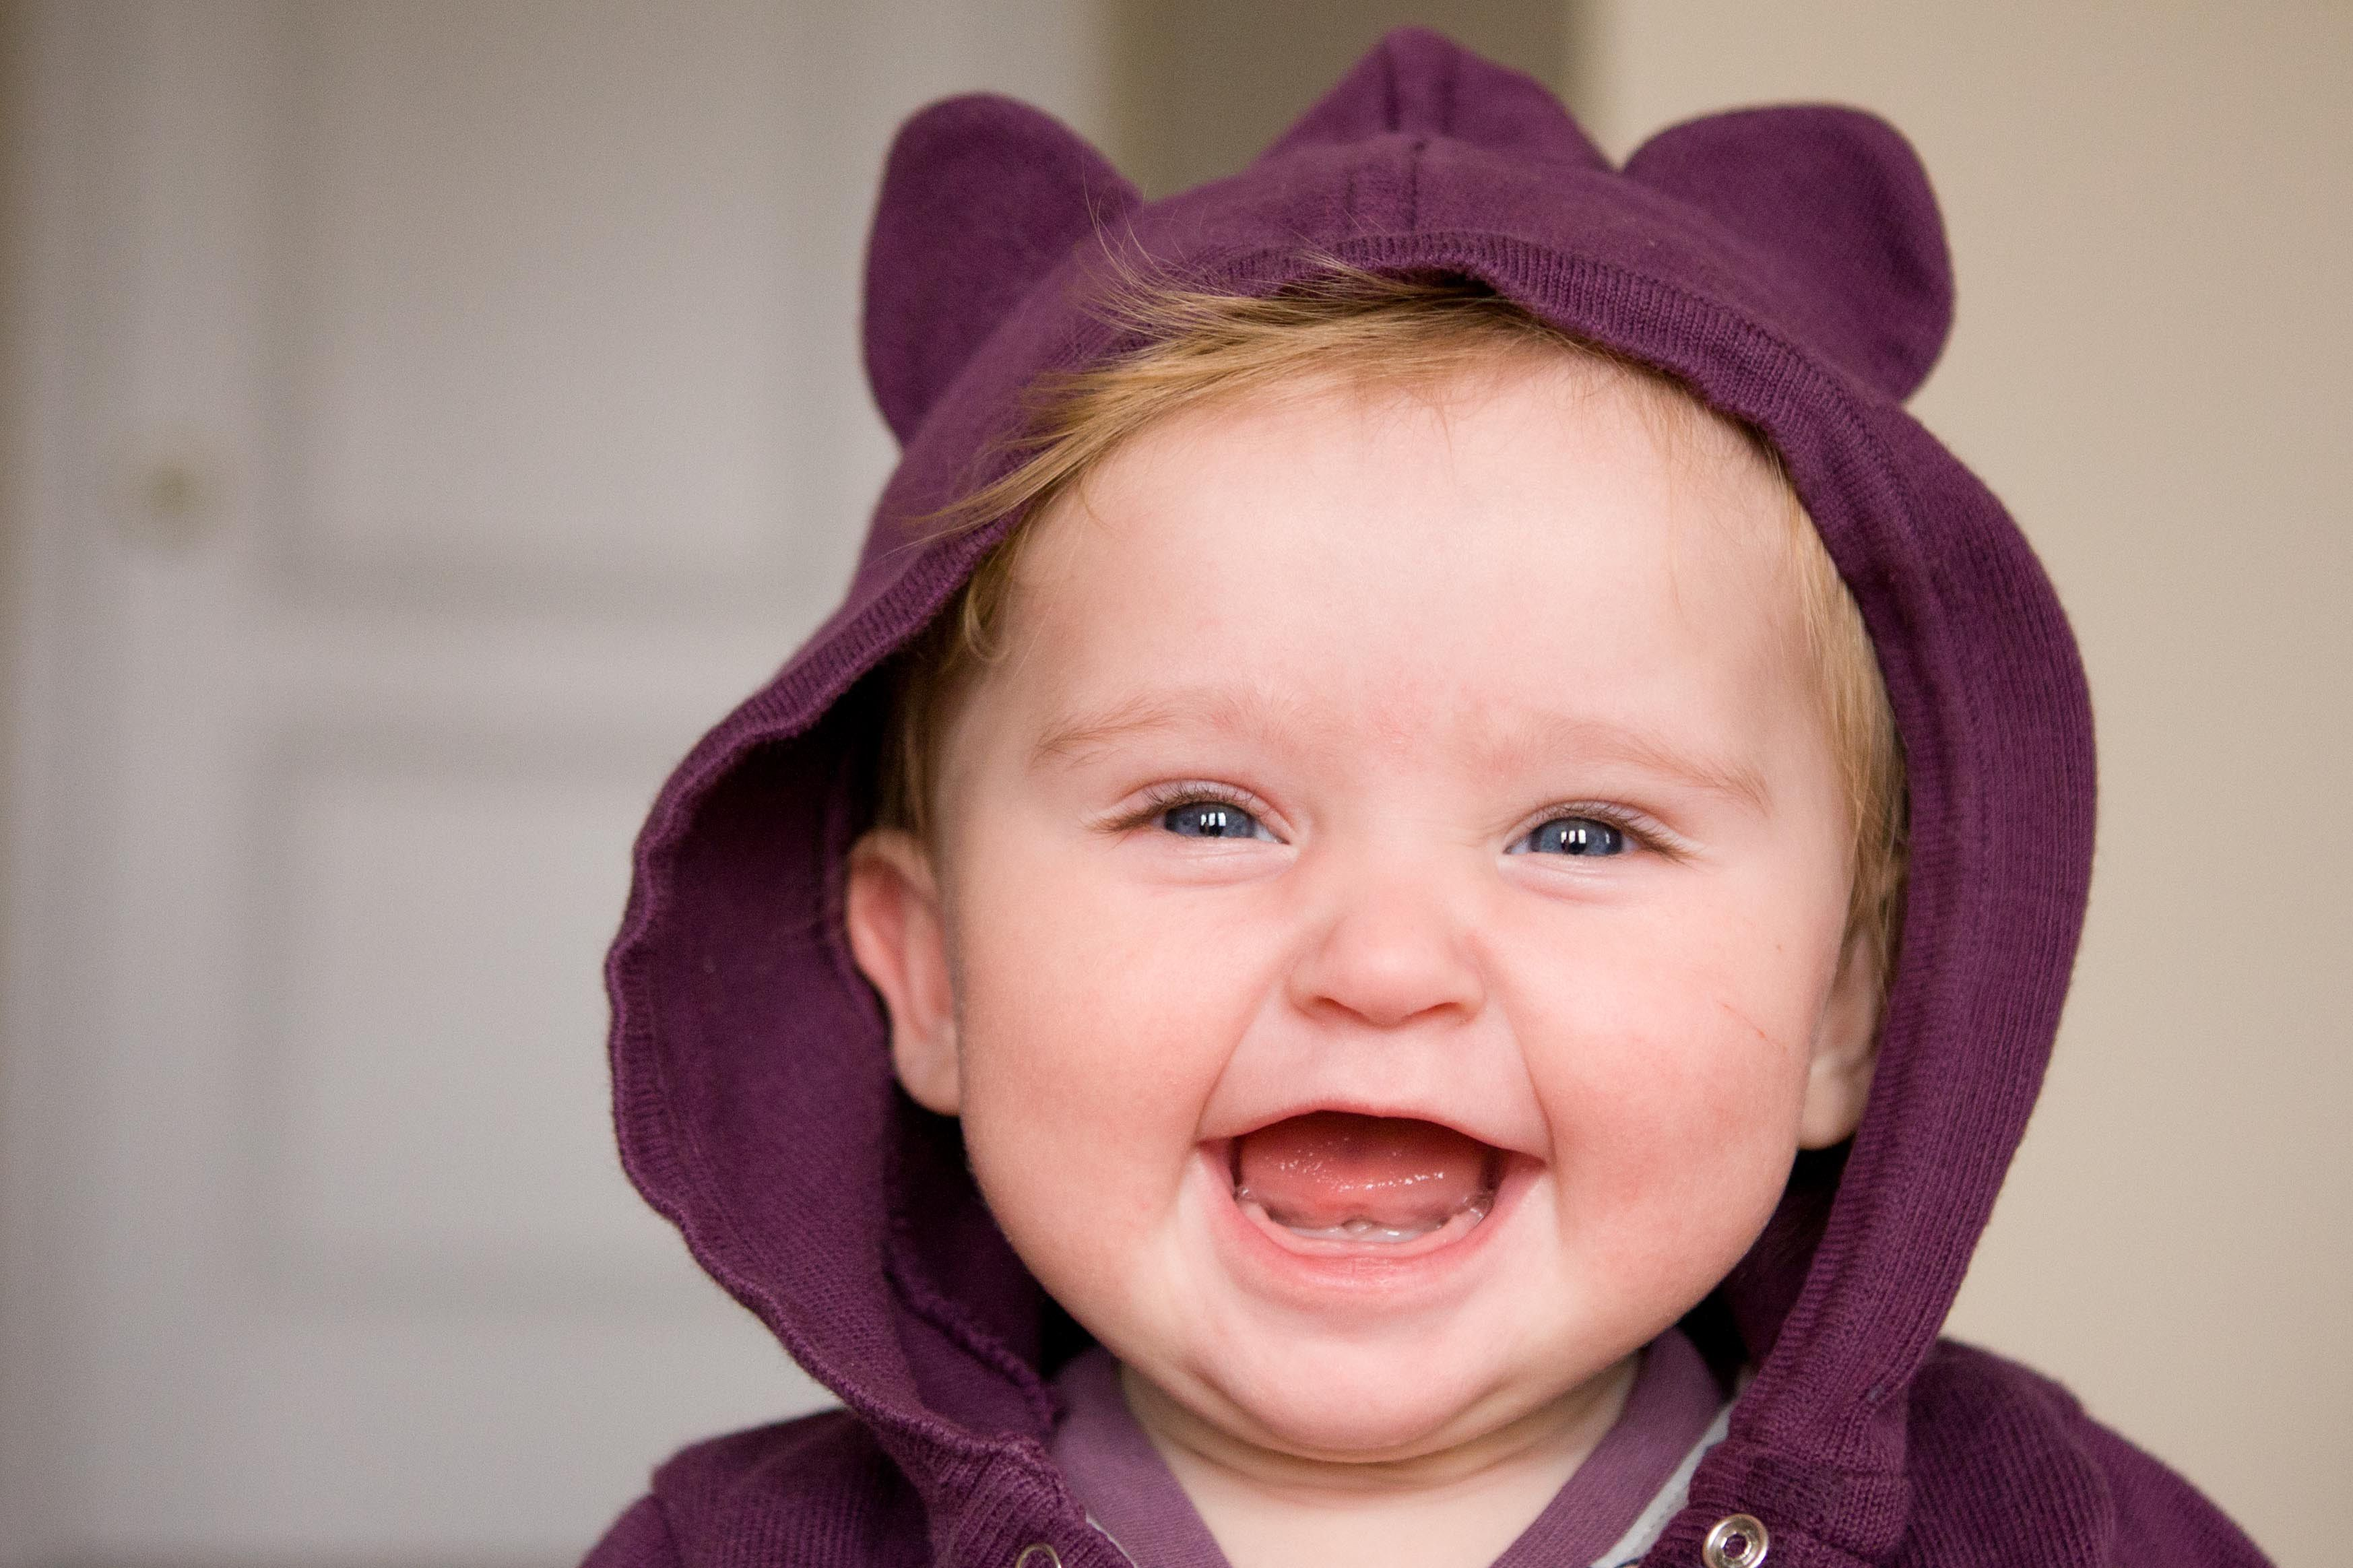 Baby Boy Names For 2014 A Safe Way To Choose Baby Boy Pictures Cute Baby Boy Pictures Cute Baby Wallpaper